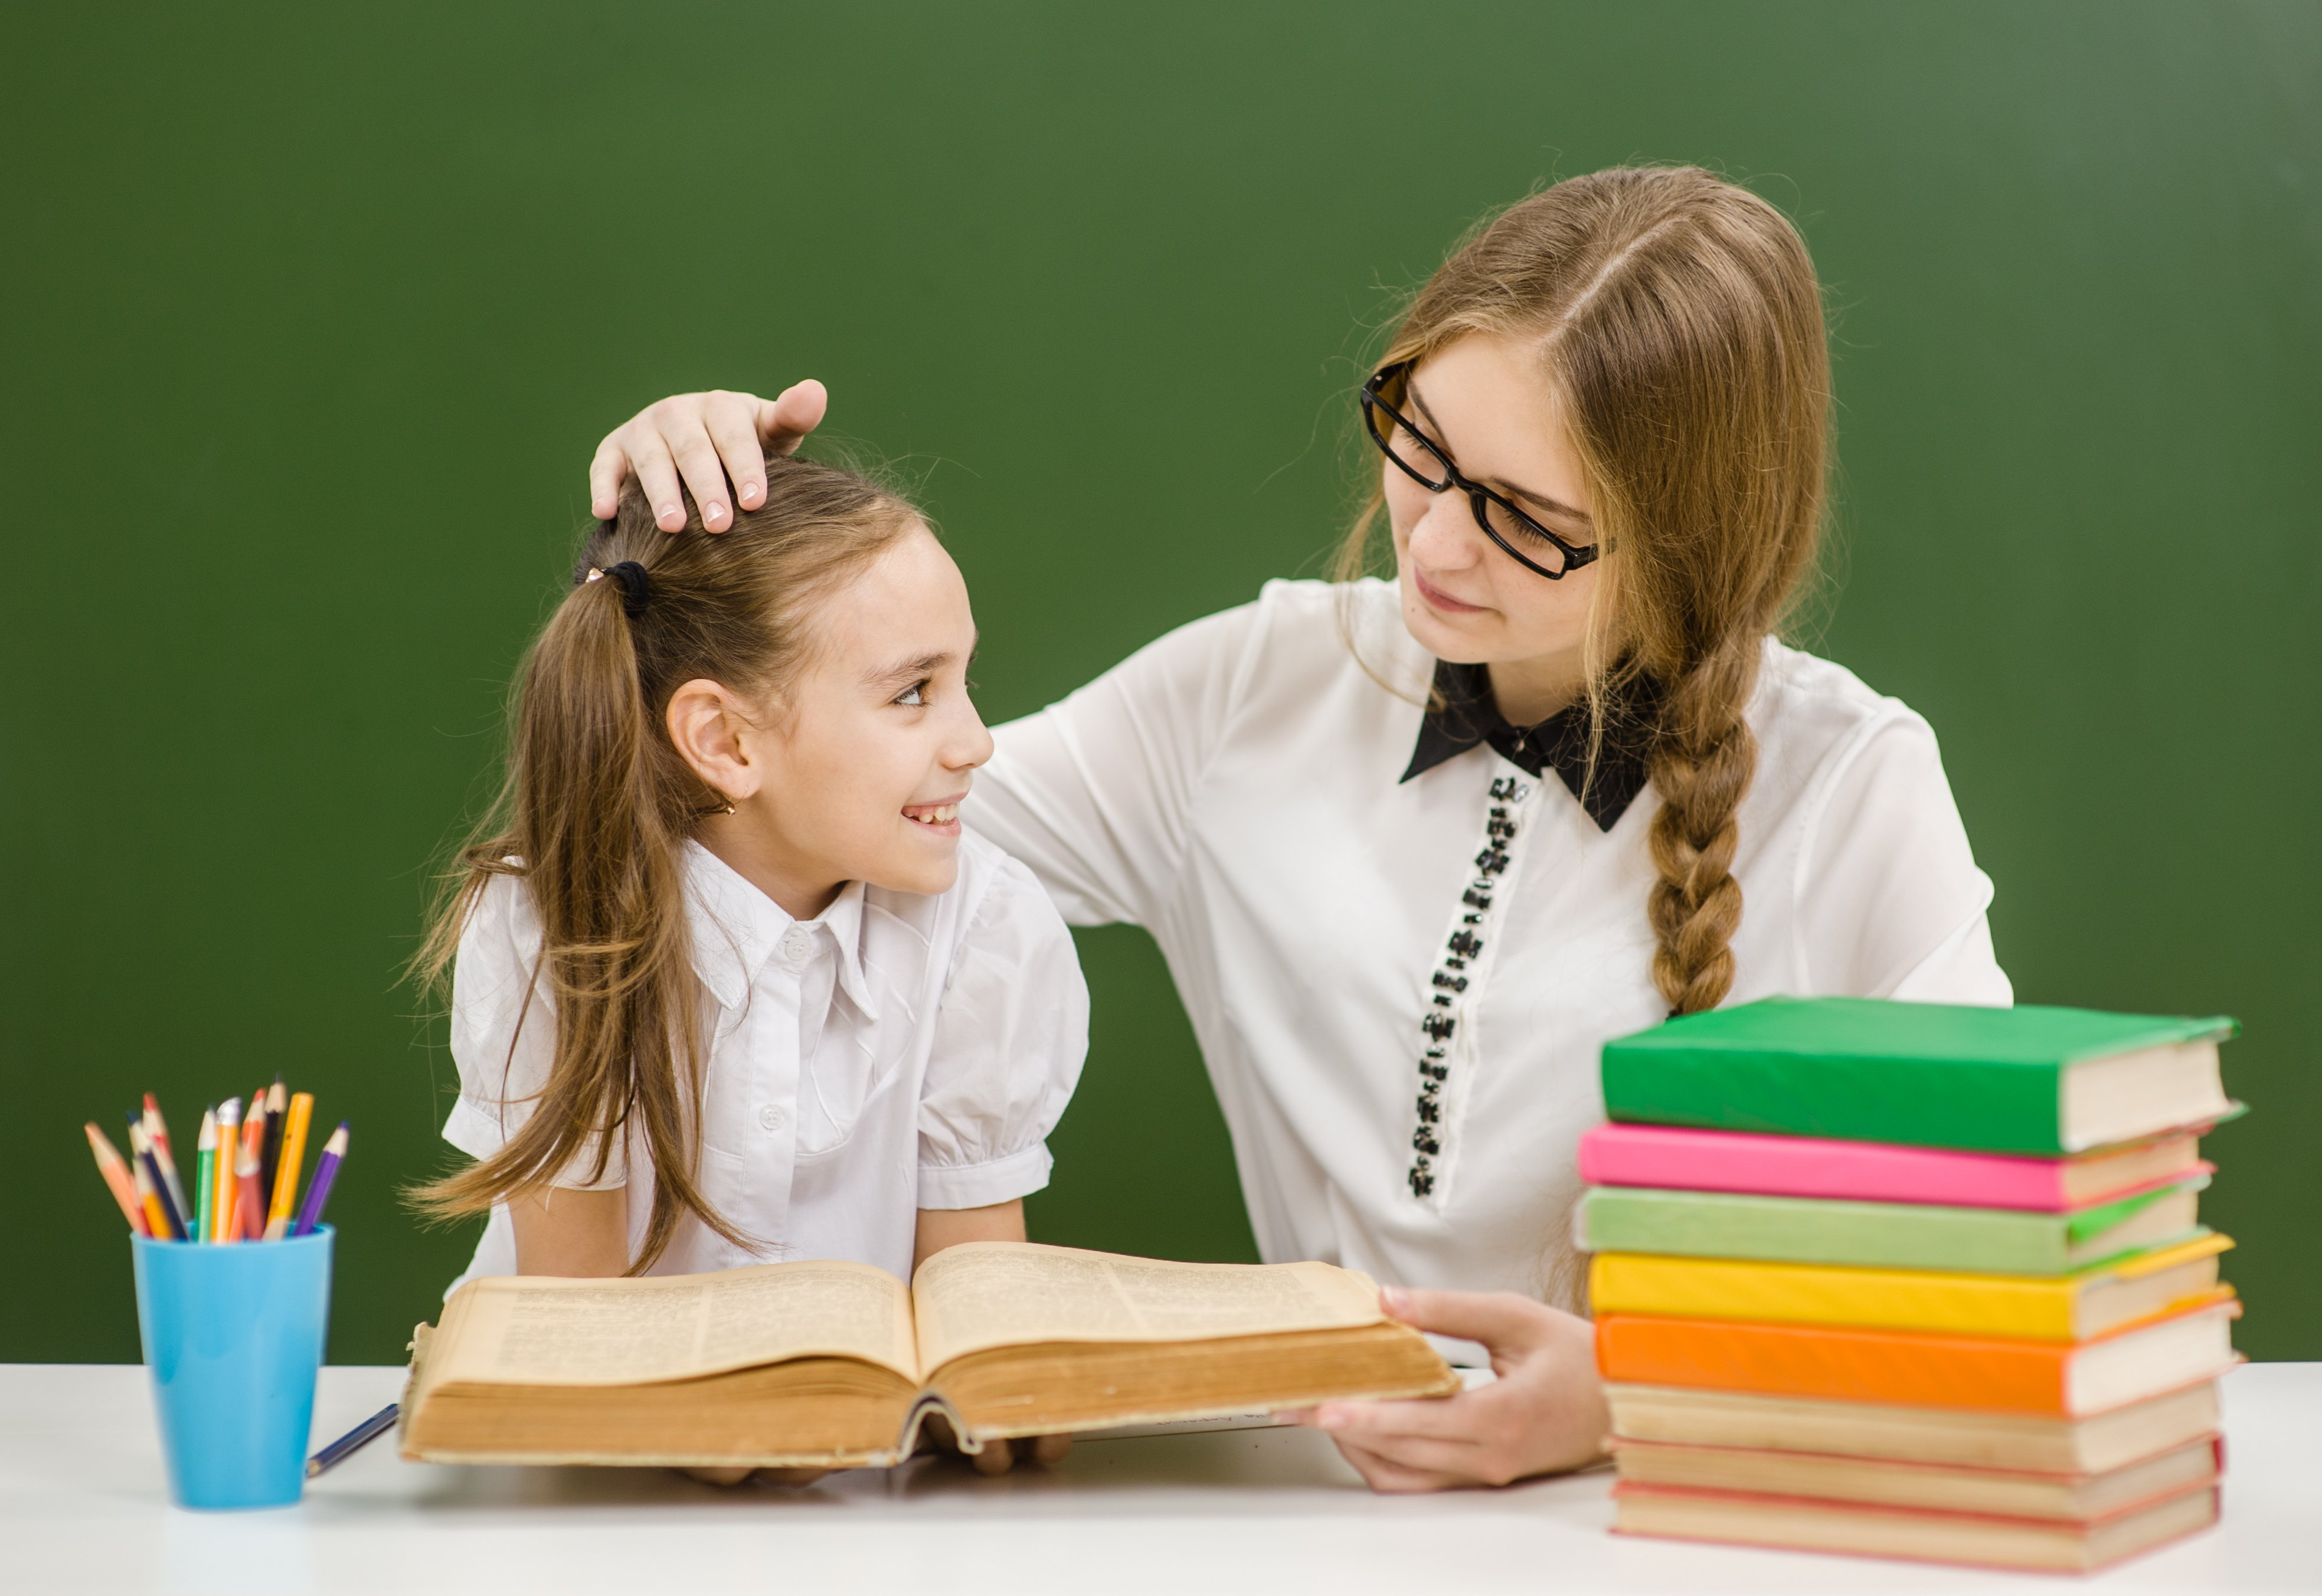 Teacher and student in classroom. | Photo: Shutterstock